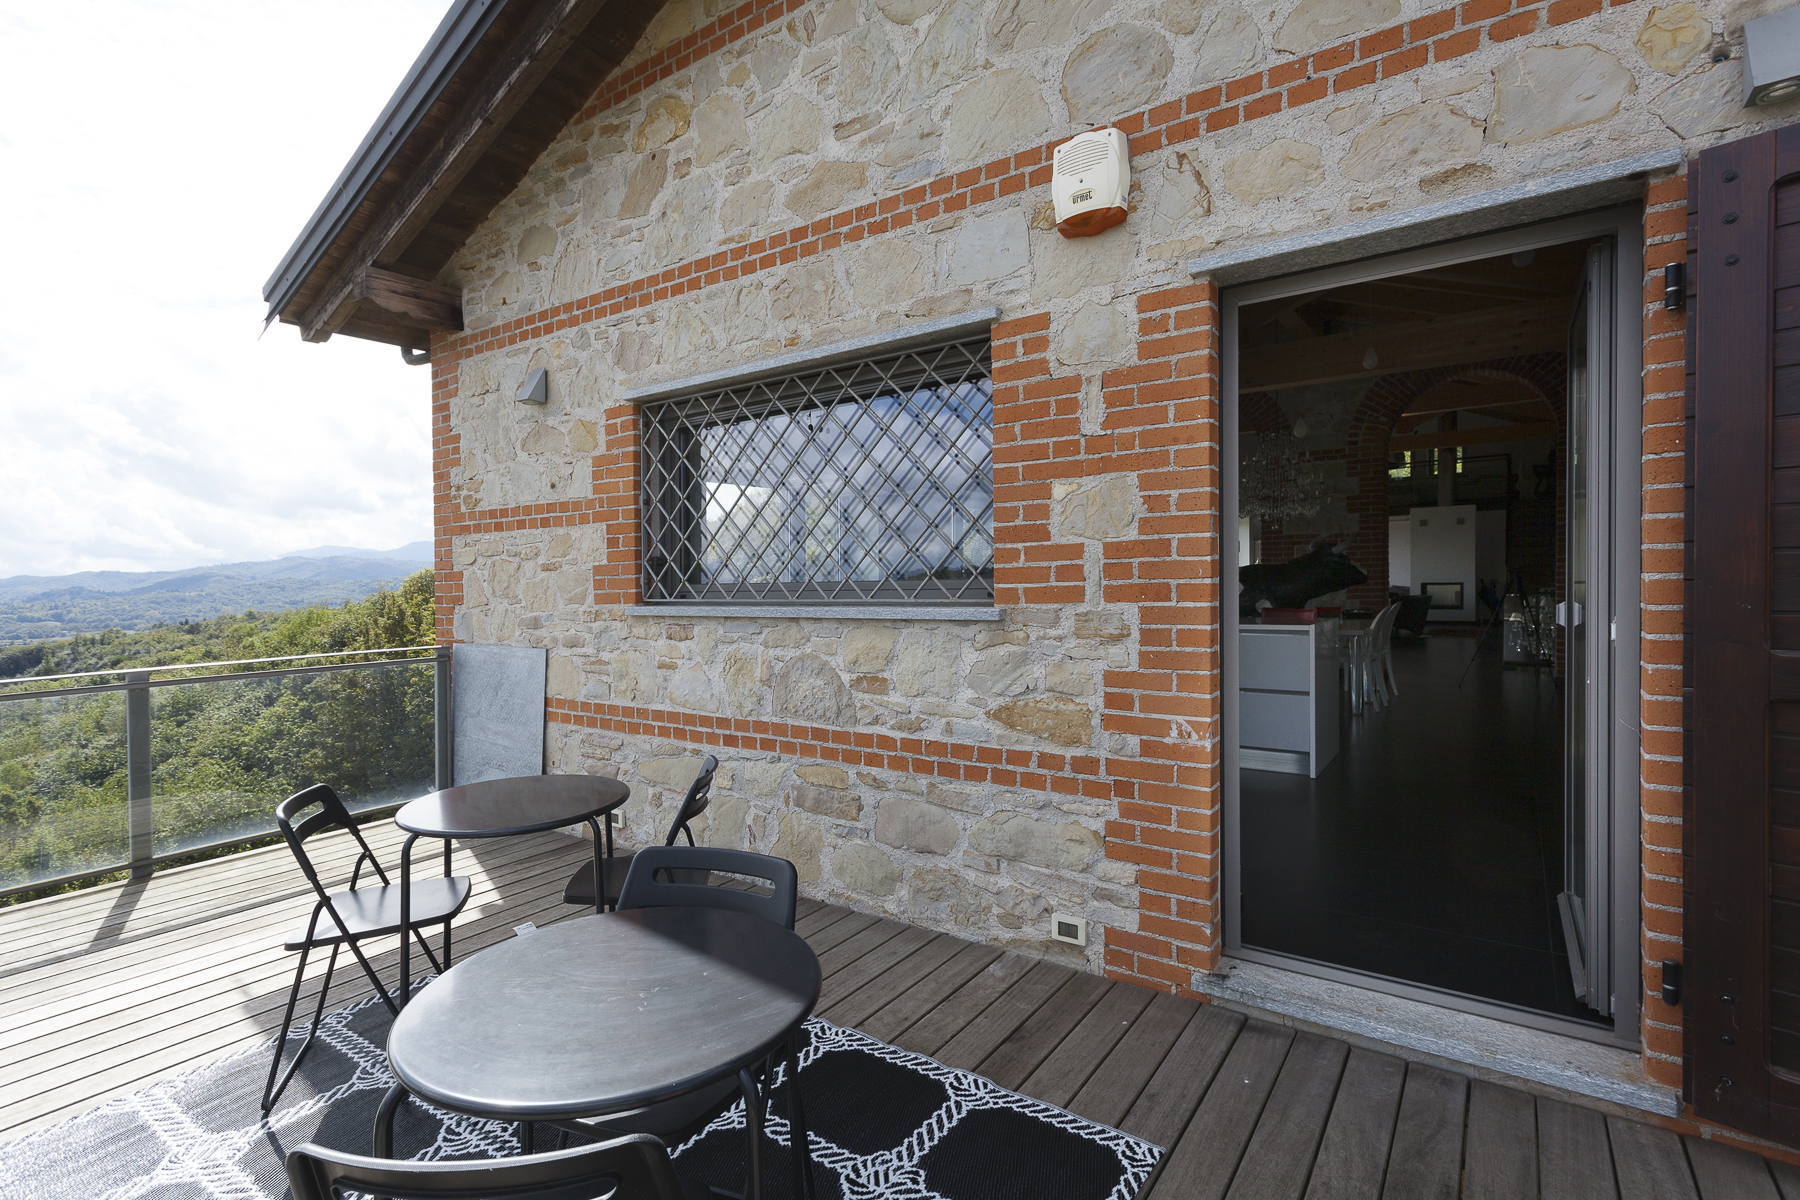 Additional photo for property listing at Country Home overlooking val Bormida Via Nazionale   17017 Andere Länder